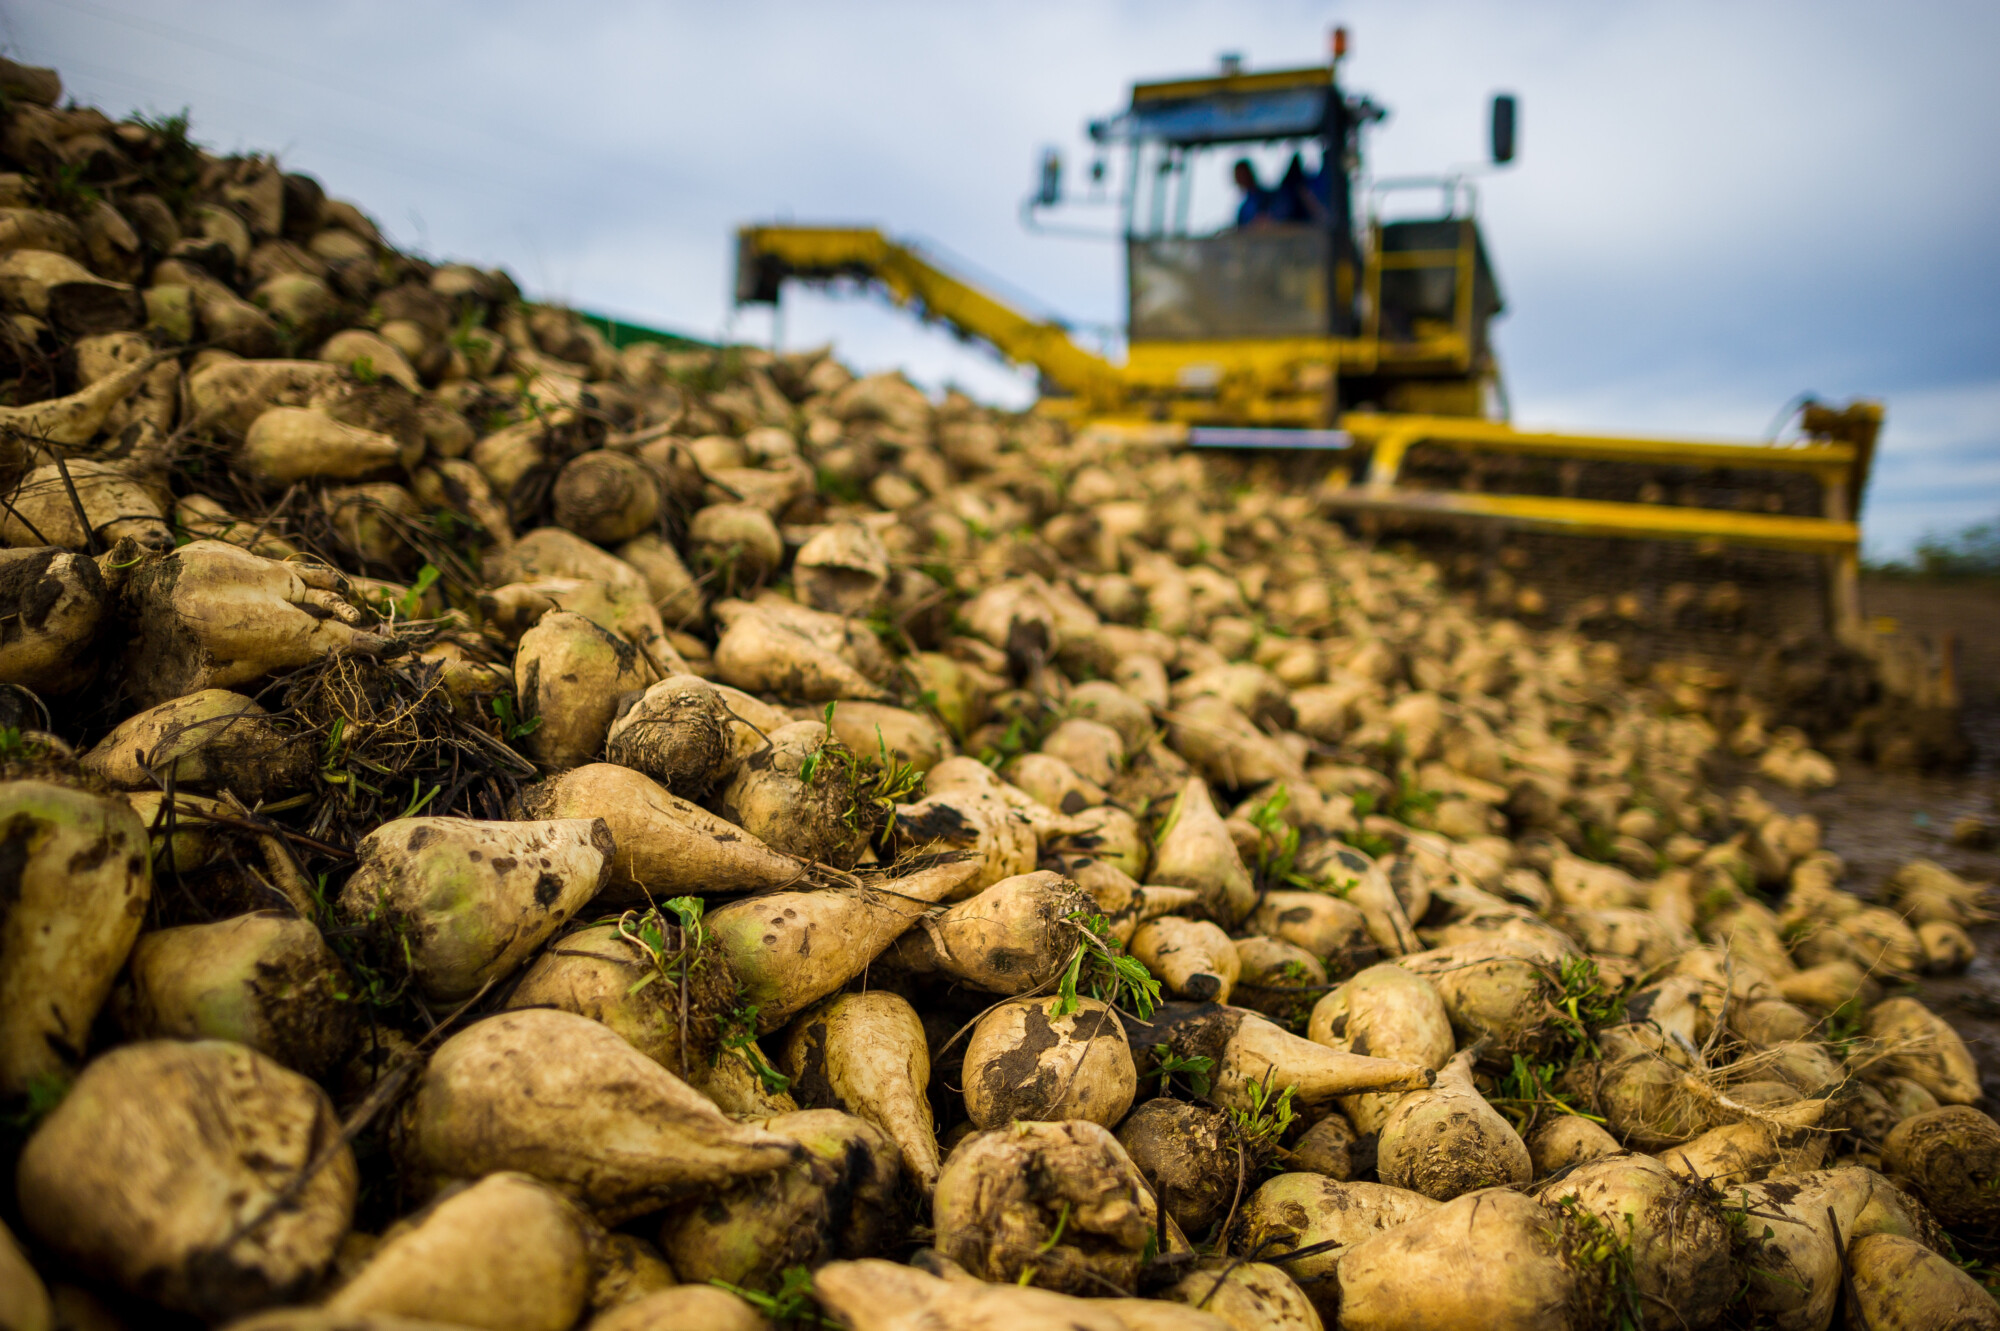 close up of sugar beet with farm vehicle in the background